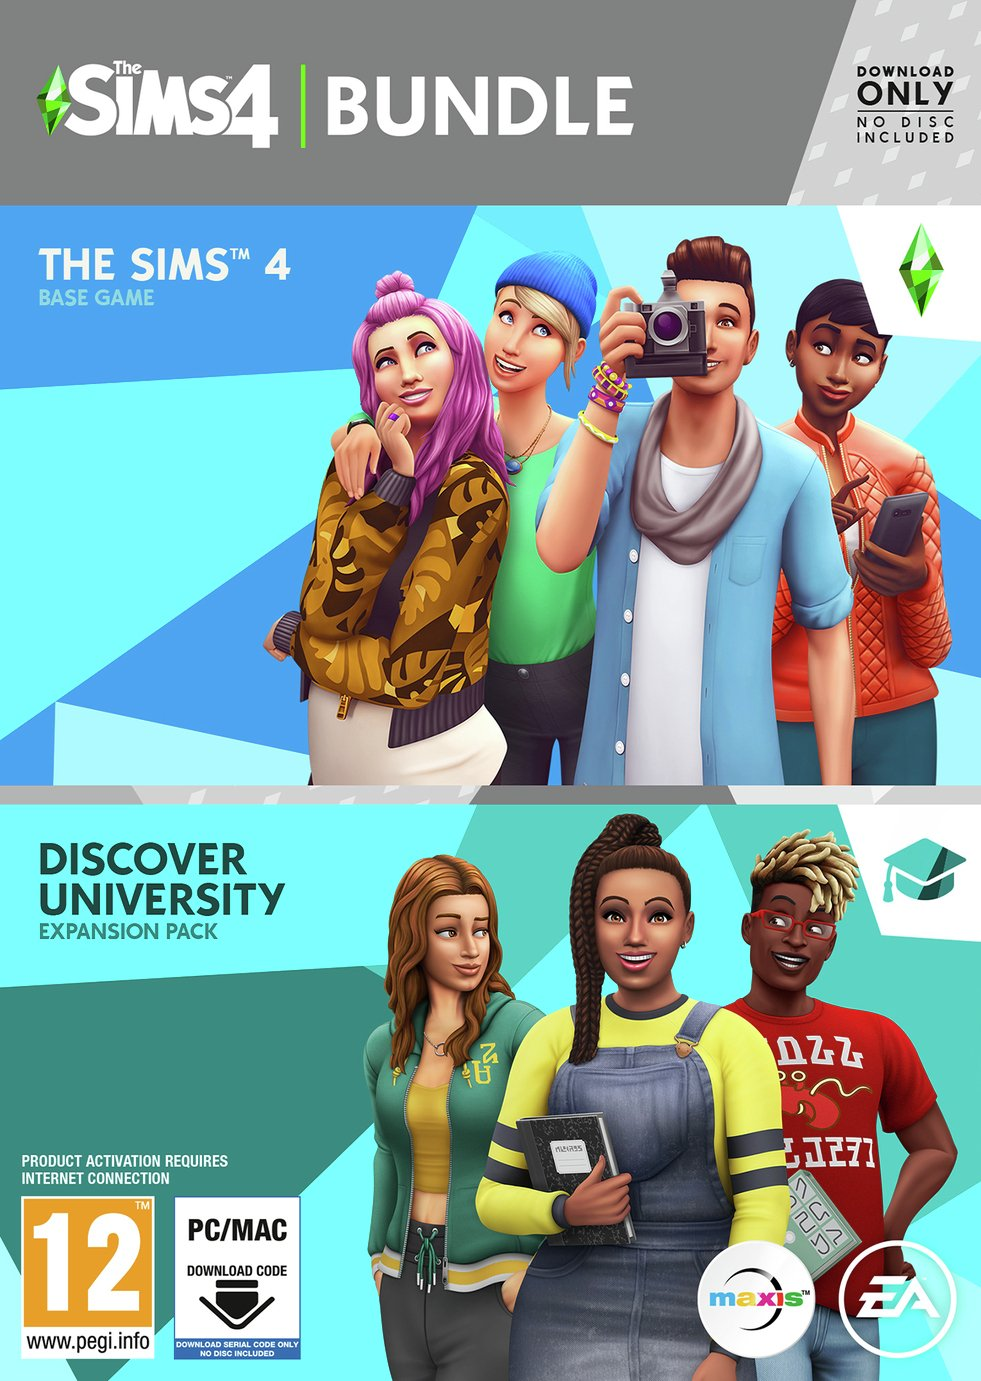 The Sims 4 Discover University PC Game & Expansion Pack